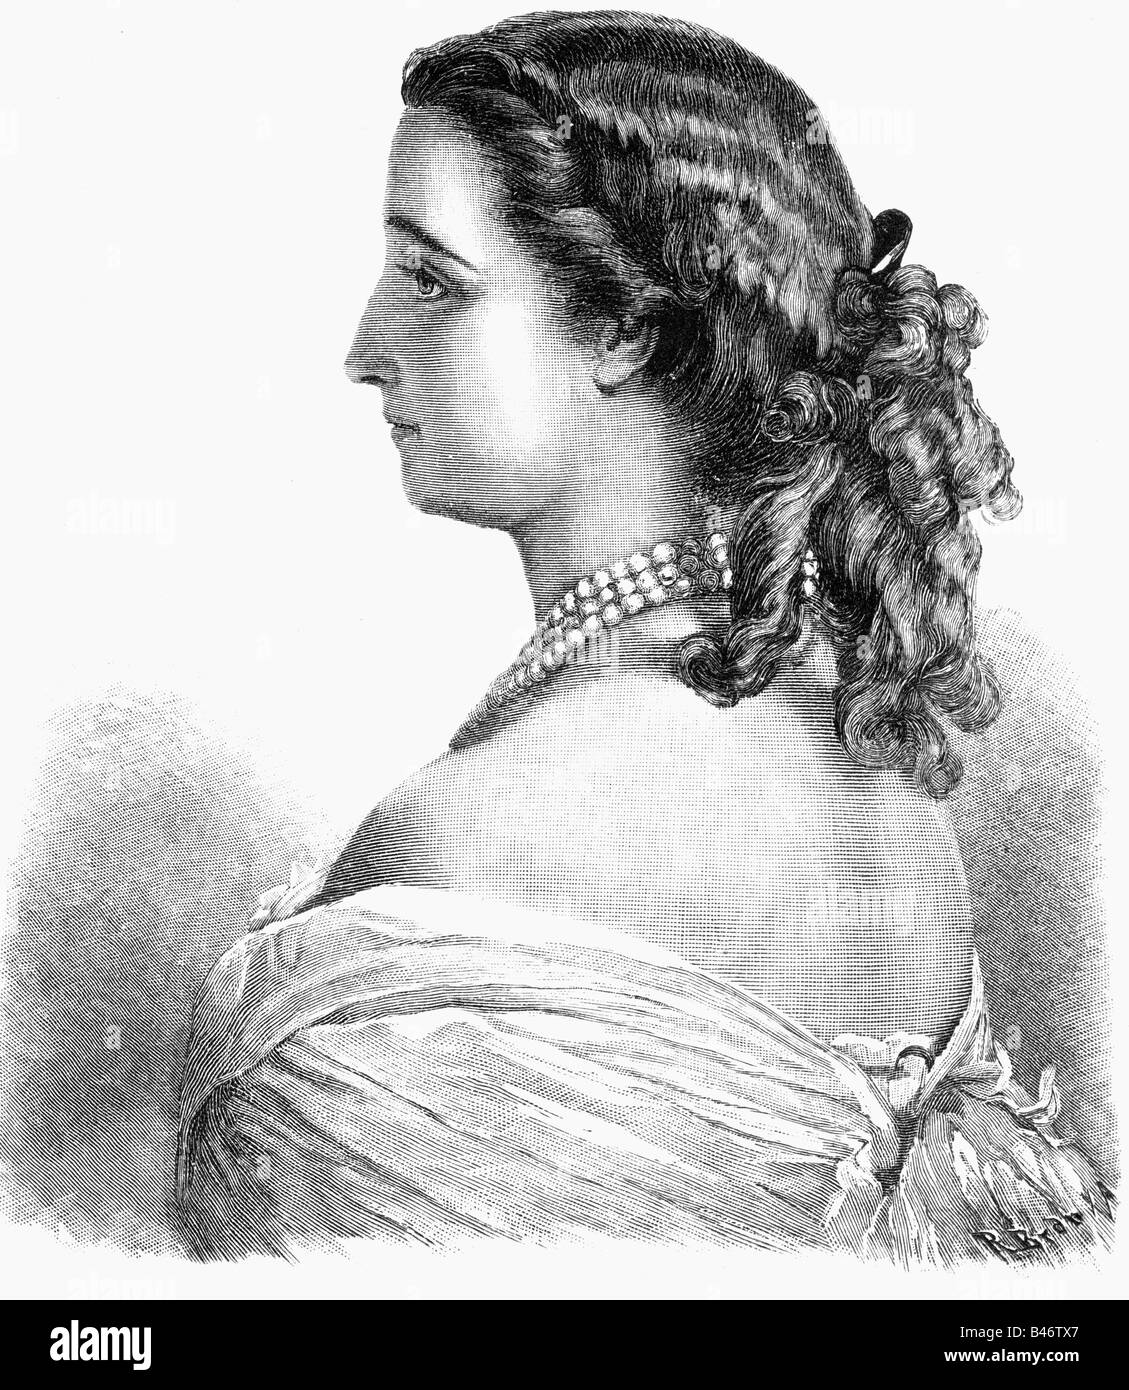 Eugenie, 5.5.1826 - 11.7.1920, Empress Consort of France 30.1.1853 - 4.9.1870, half length, wood engraving after - Stock Image